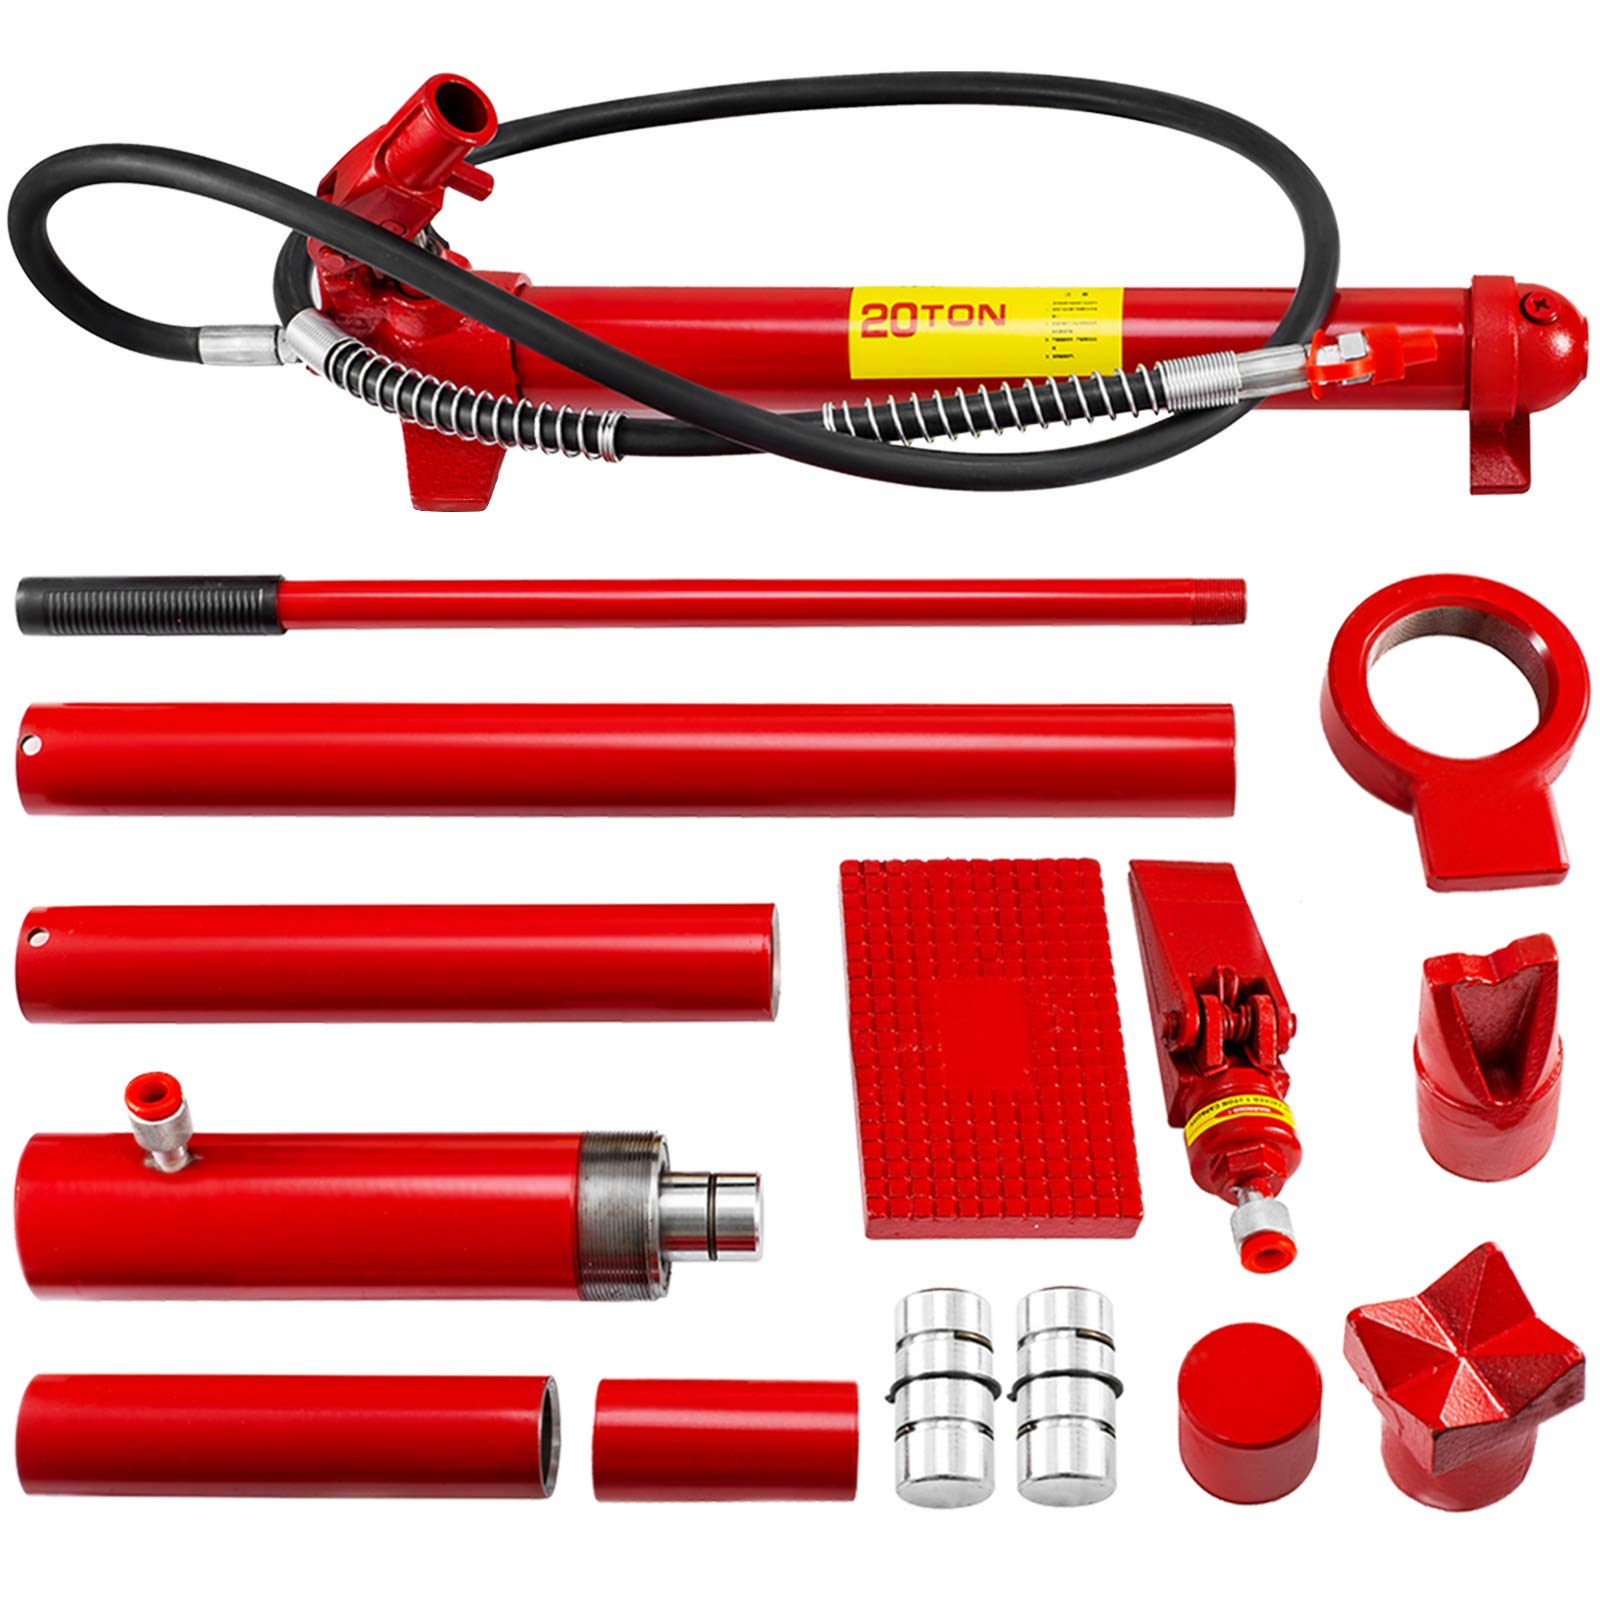 Mophorn 20 Ton Porta Power Kit 2M Hydraulic Car Jack Ram 13.78 inch Lifting Height Autobody Frame Repair Power Tools for Loadhandler Truck Bed Unloader Farm and Hydraulic Equipment Construction by Mophorn